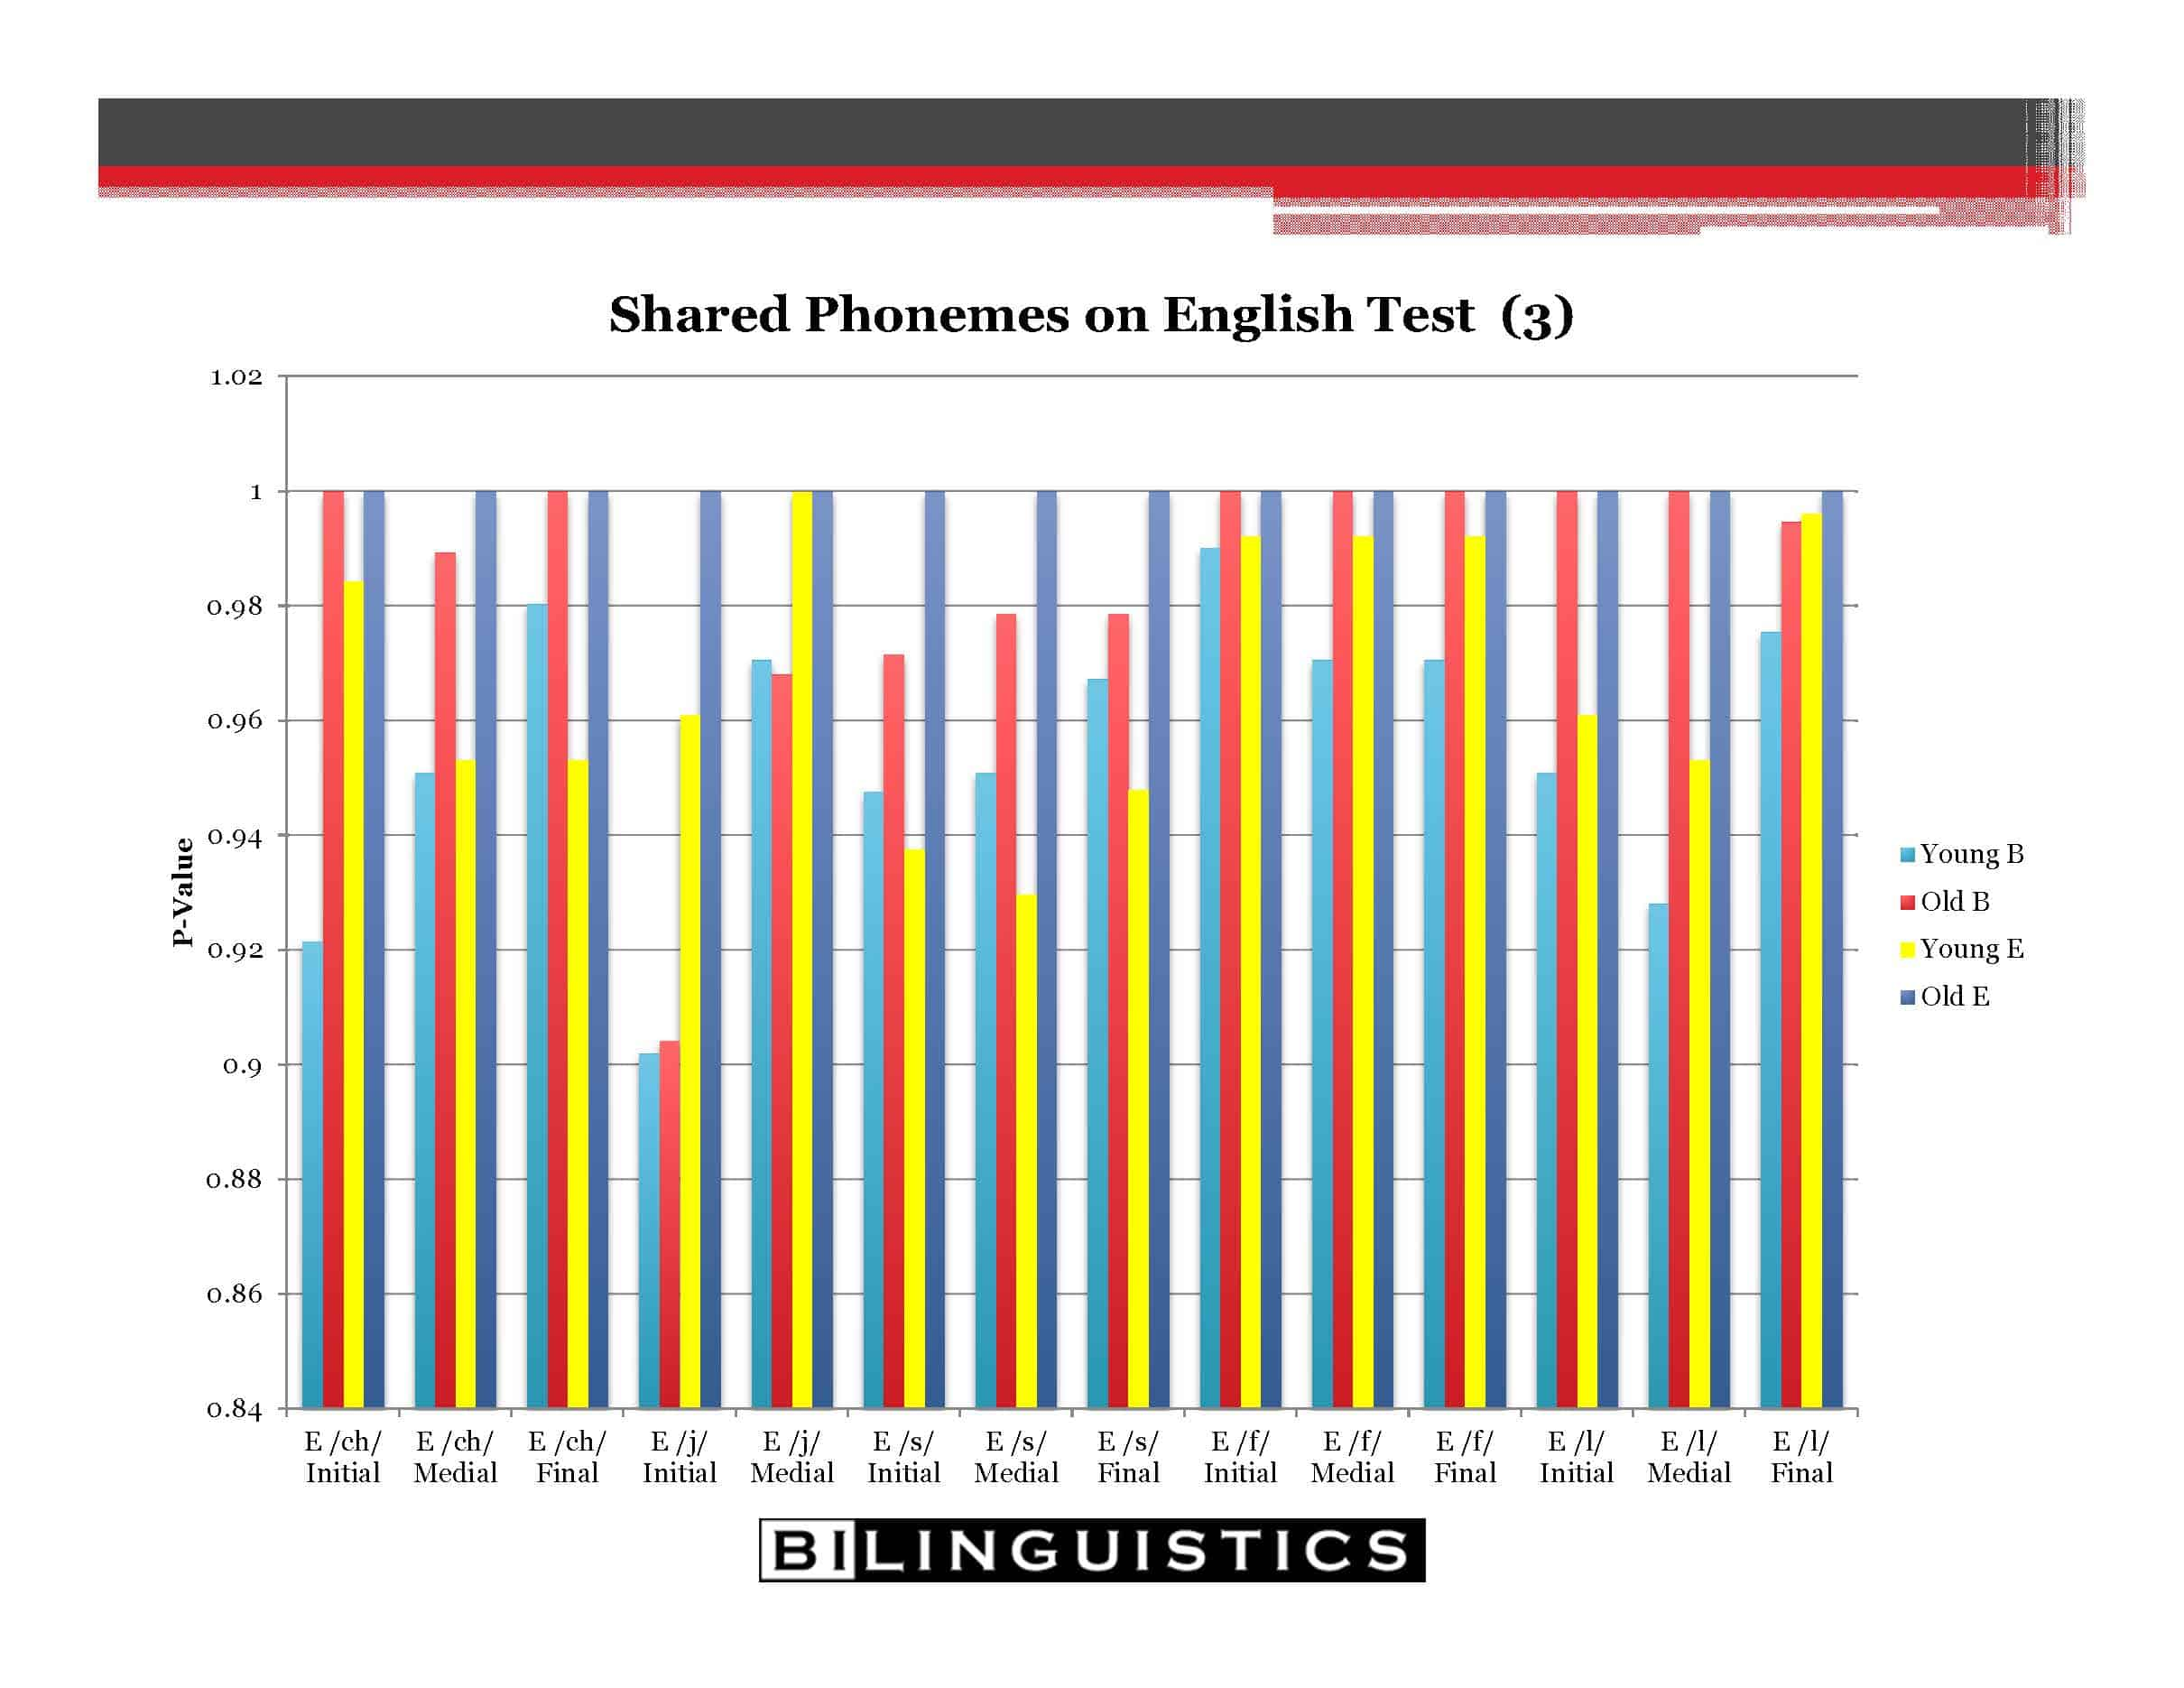 articulation errors and second language learners